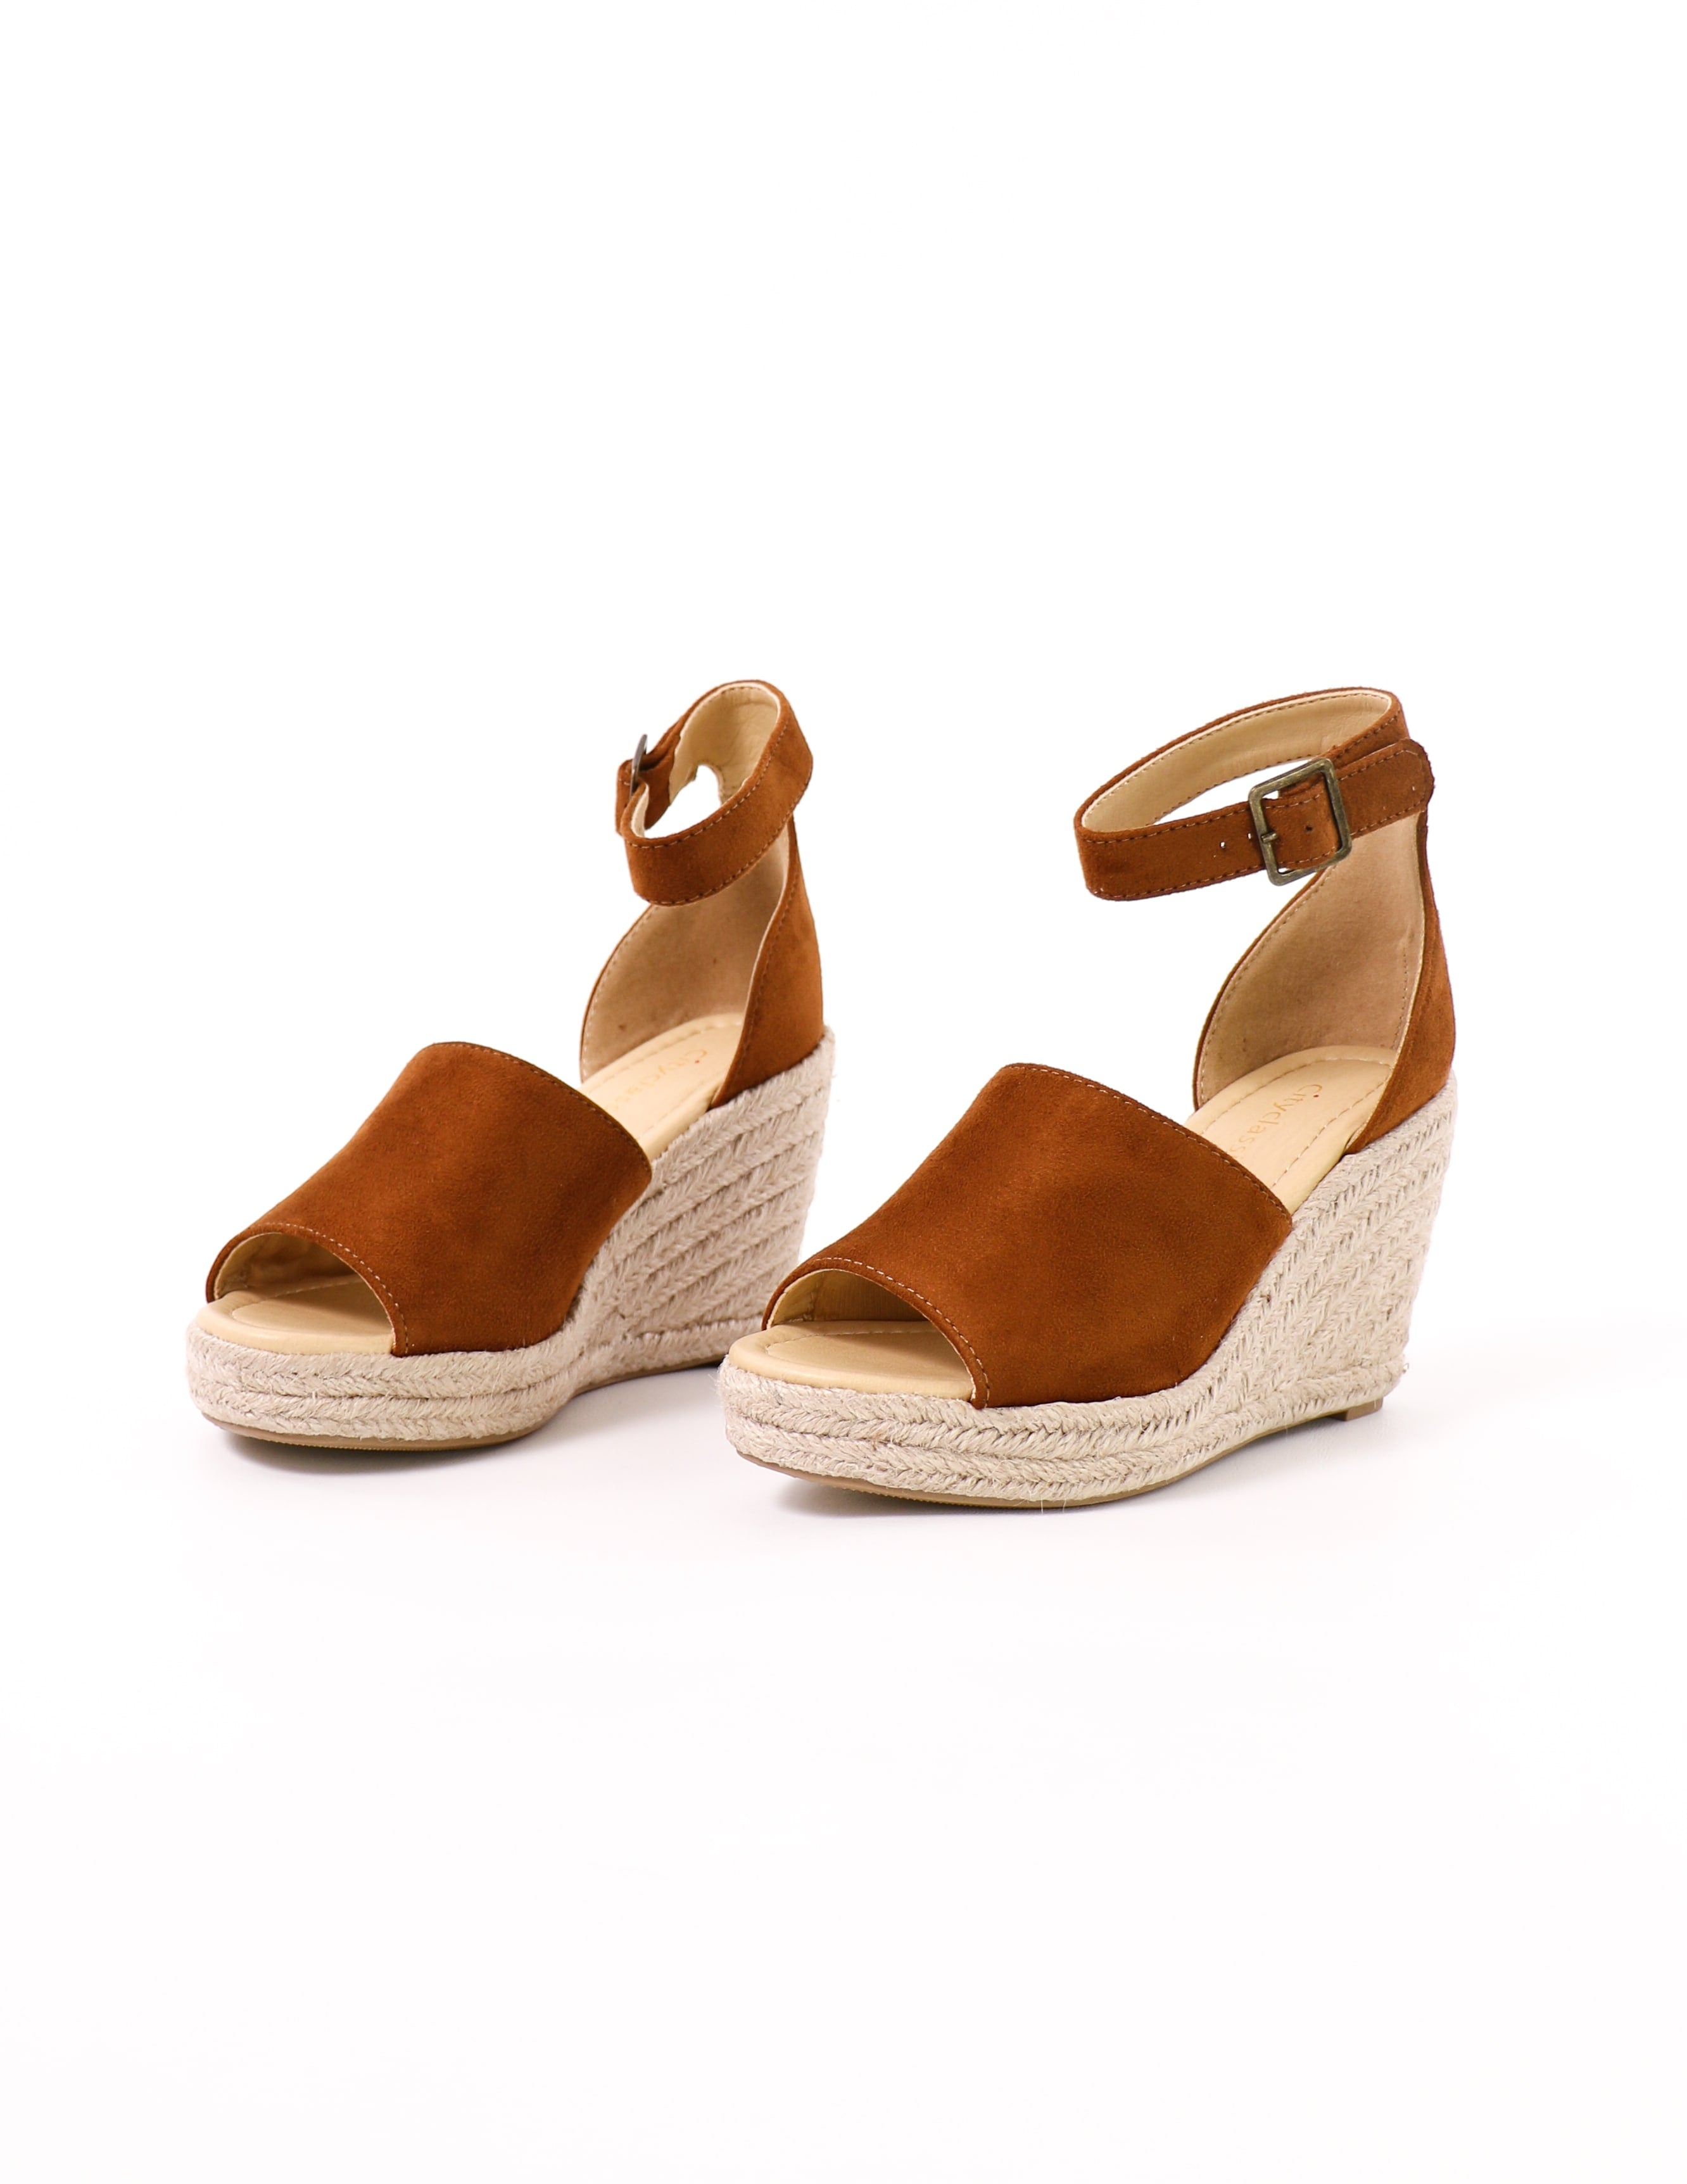 women's this is not a espadrille tan wedge sandal platform heel on white background - elle bleu shoes